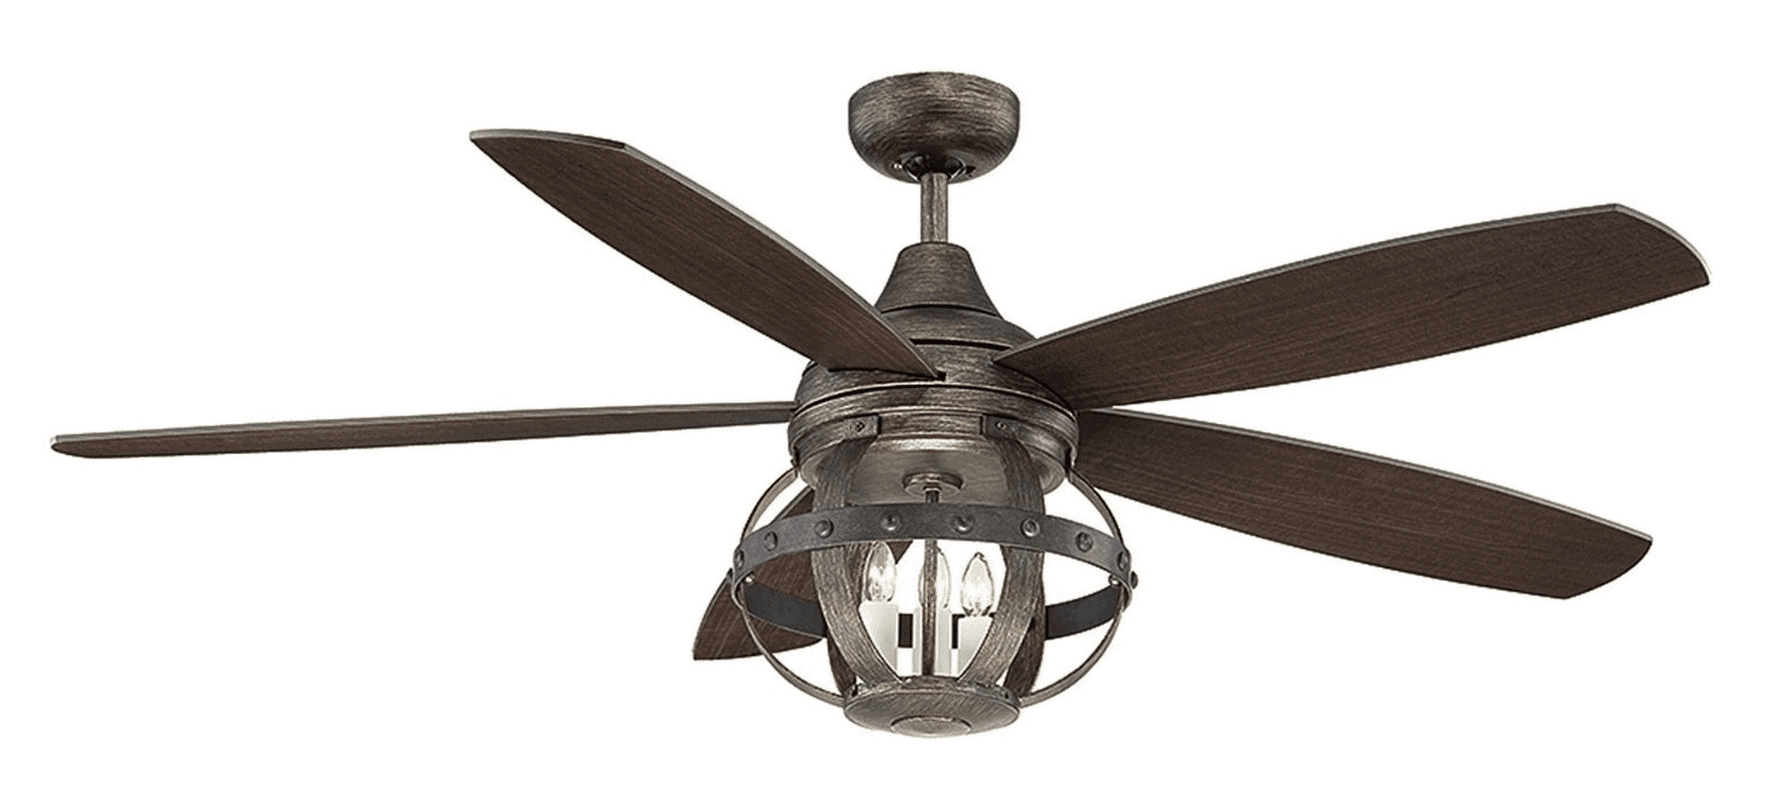 Stylish ceiling fans with lights -